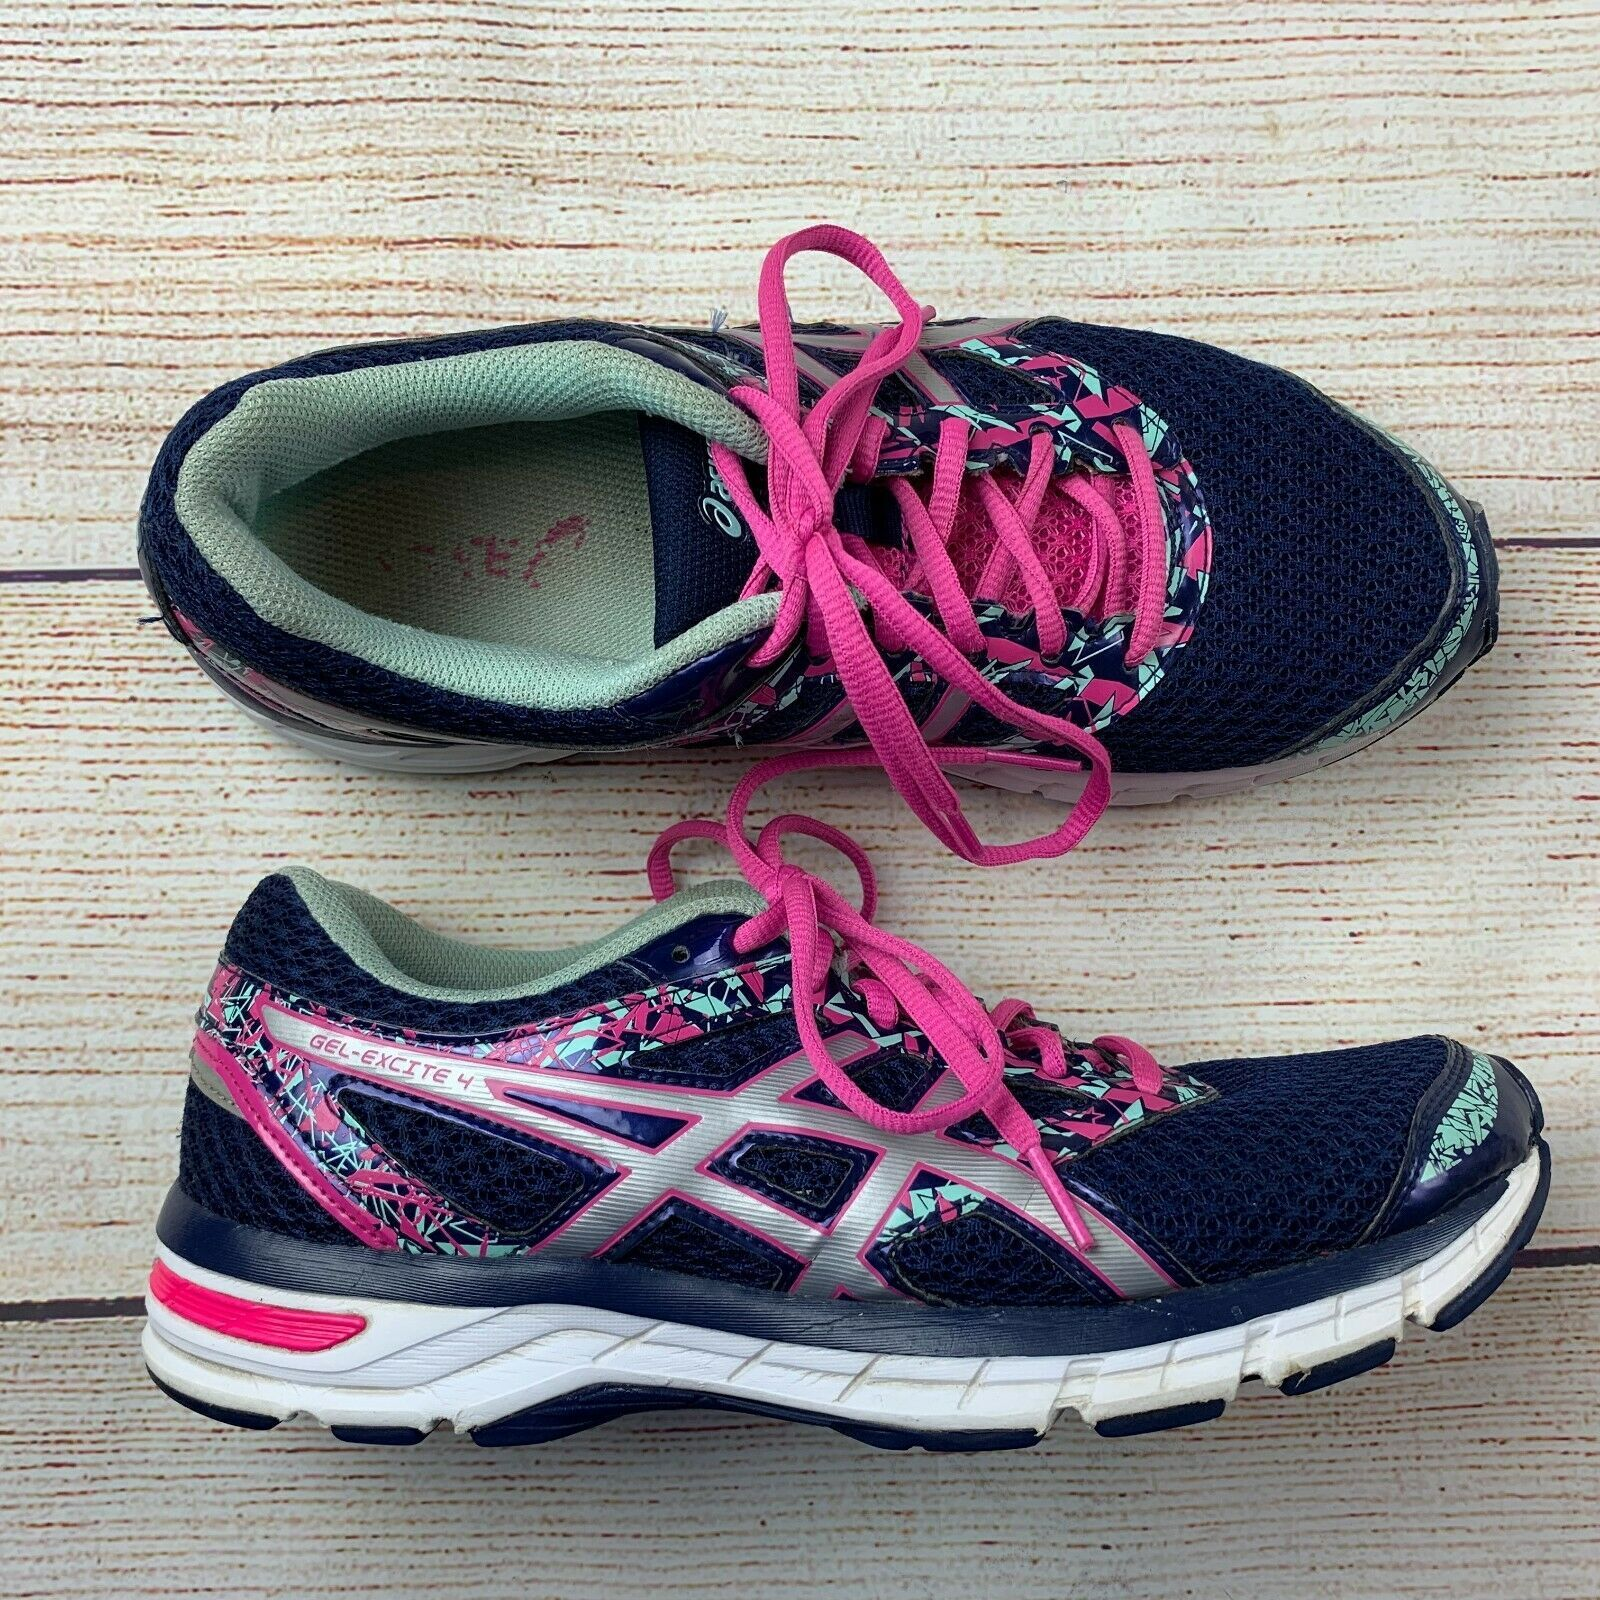 Asics womens Gel Excite 4 Navy Pink Running Shoes Sneakers 10/ 42 EUC